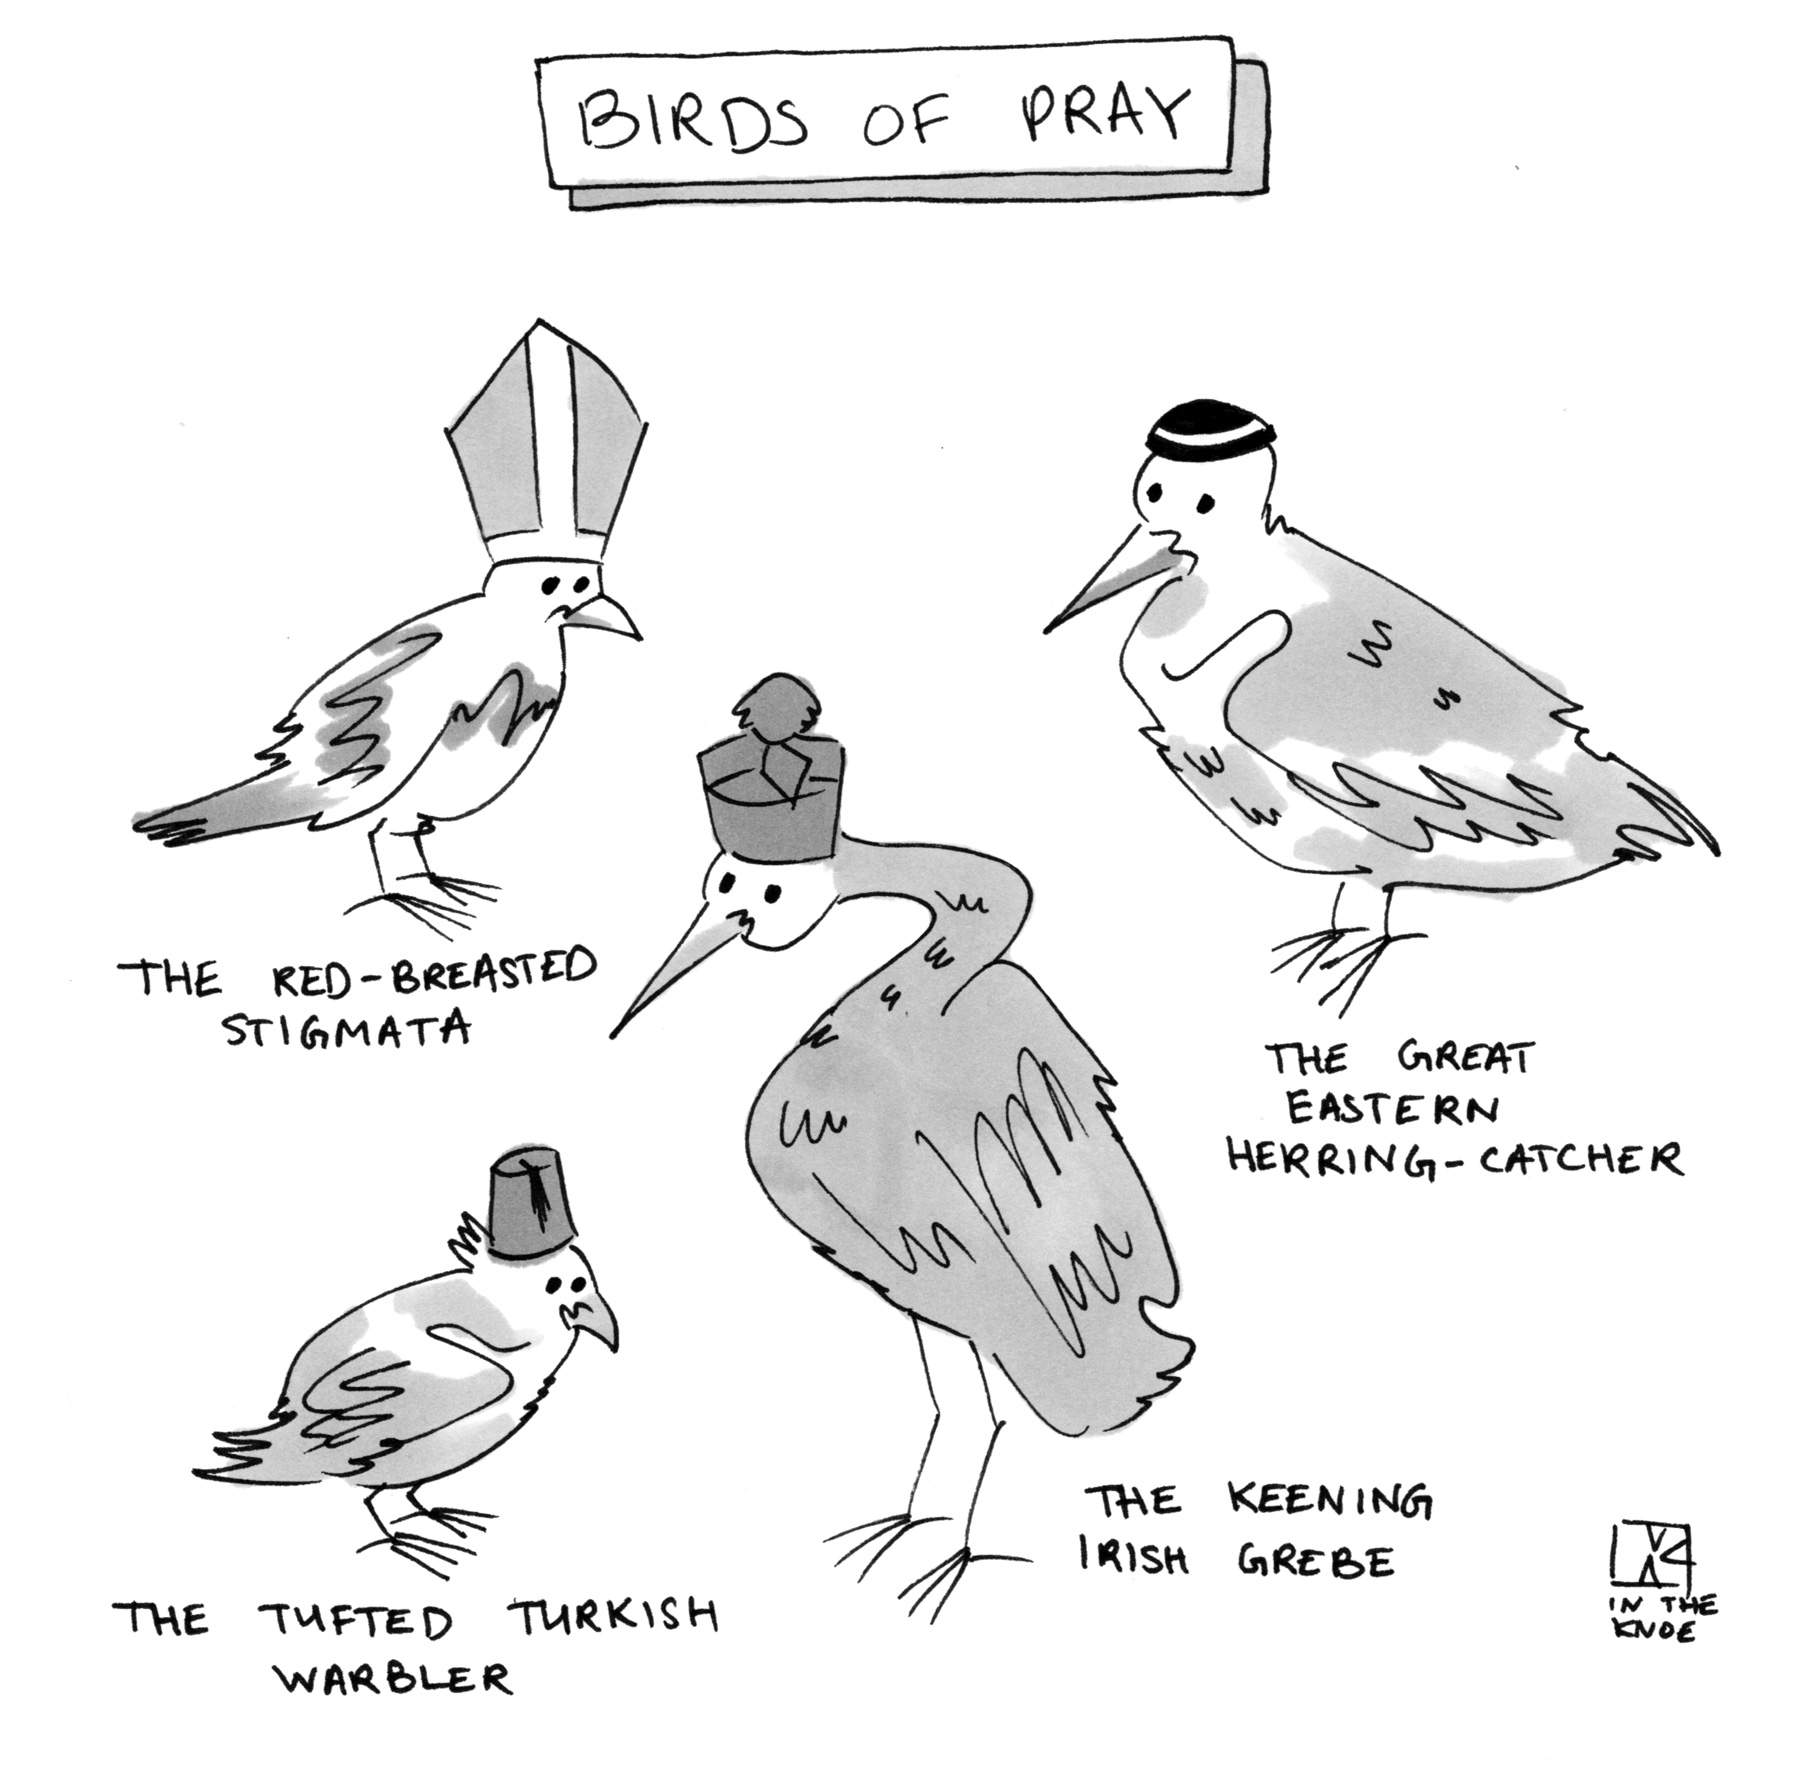 Birds of Pray: The Great Eastern Herring-Catcher, The Red-Breasted Stigmata, The Tufted Turkish Warbler, The Keening Irish Grebe